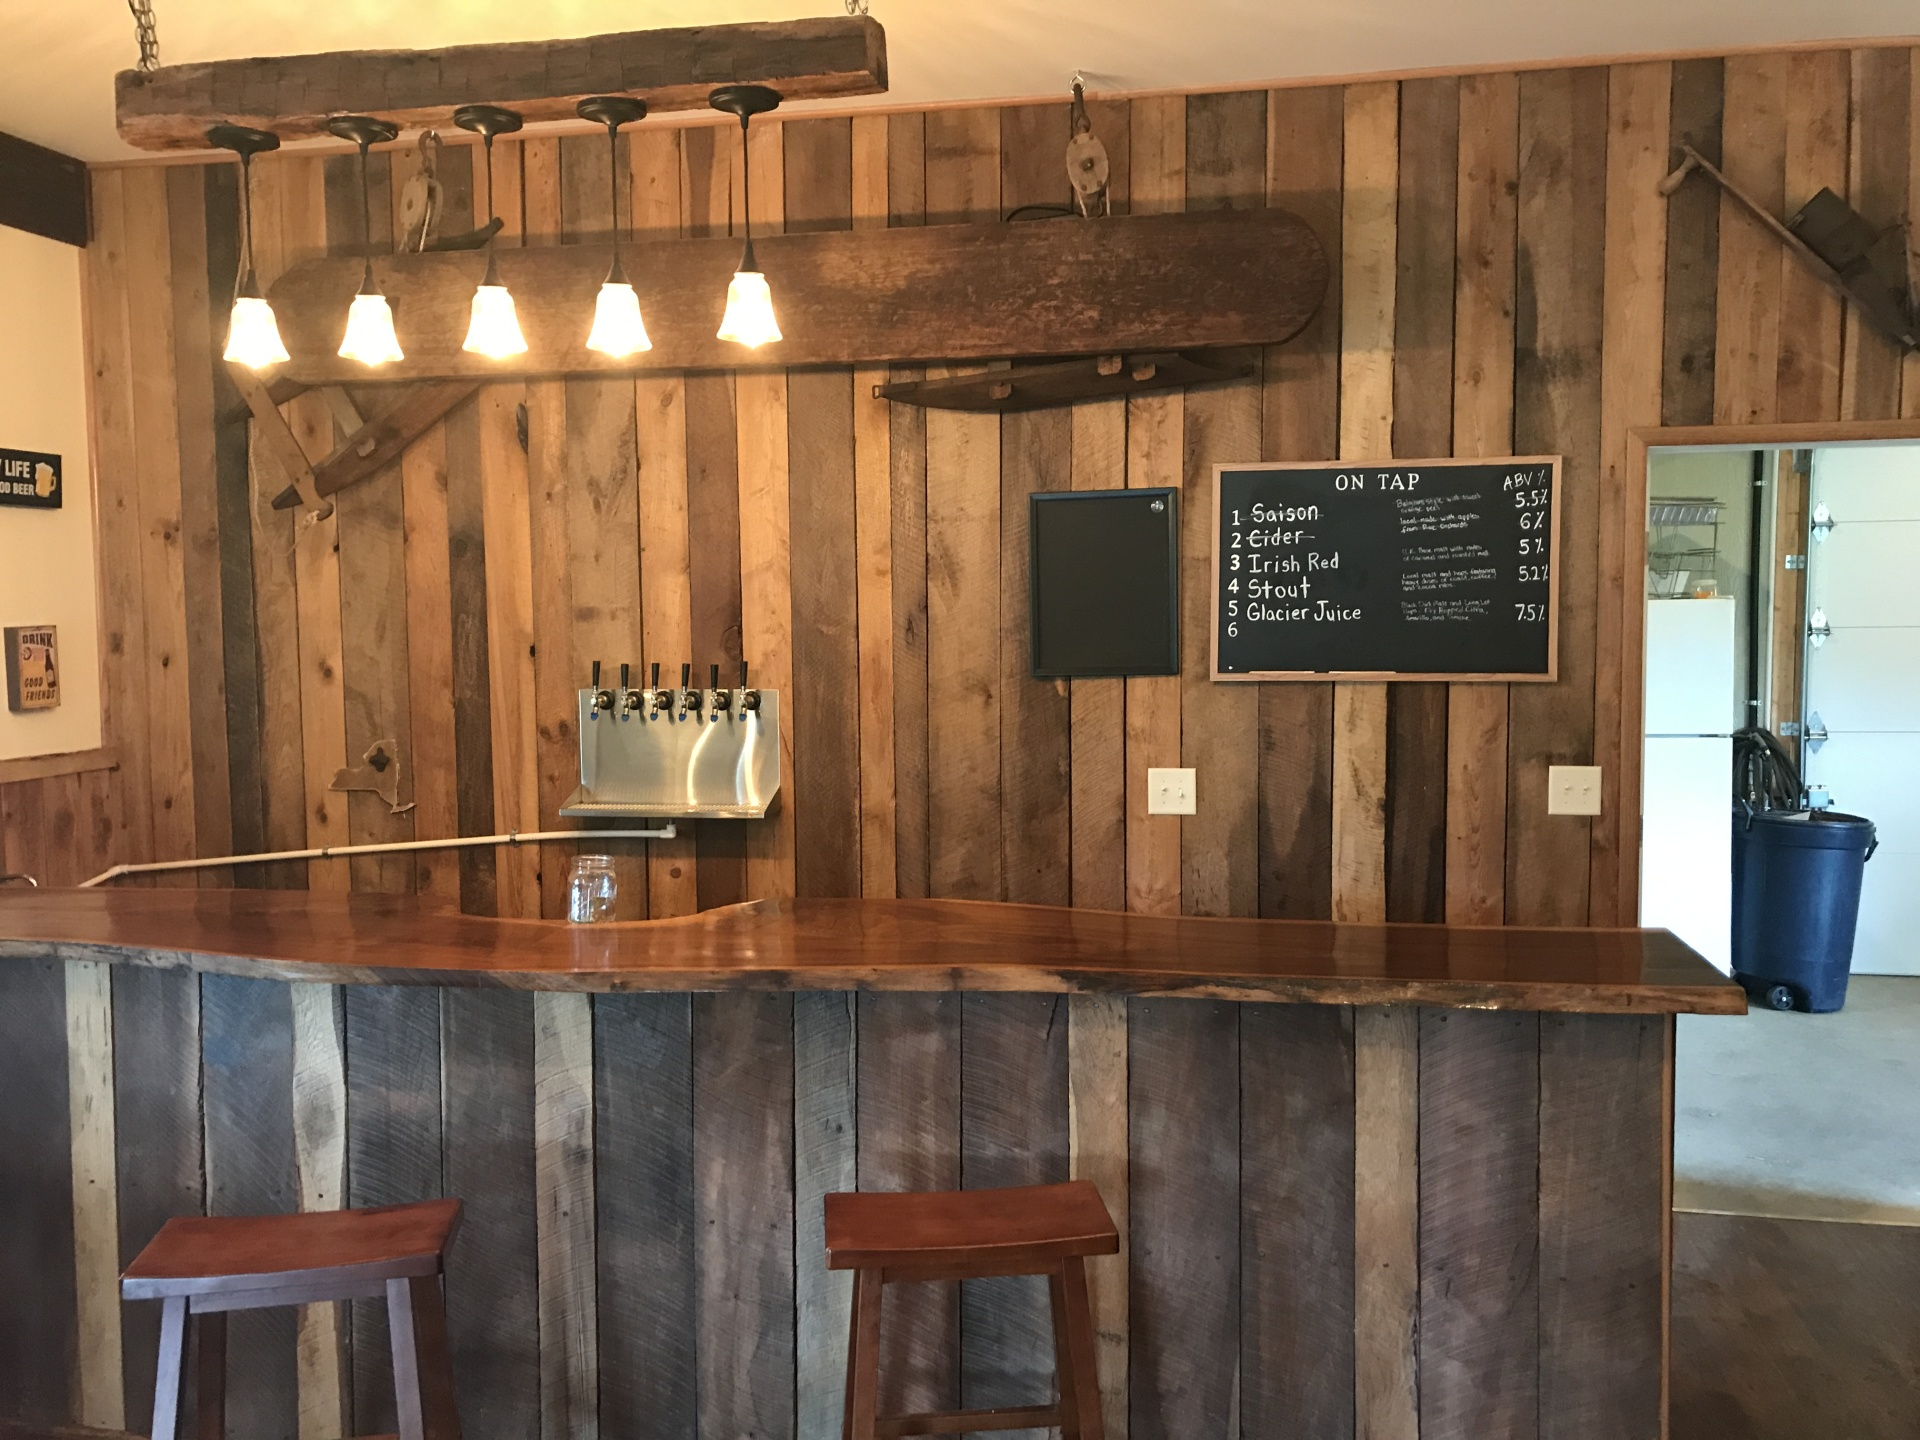 The Liquid Hop Dispensary